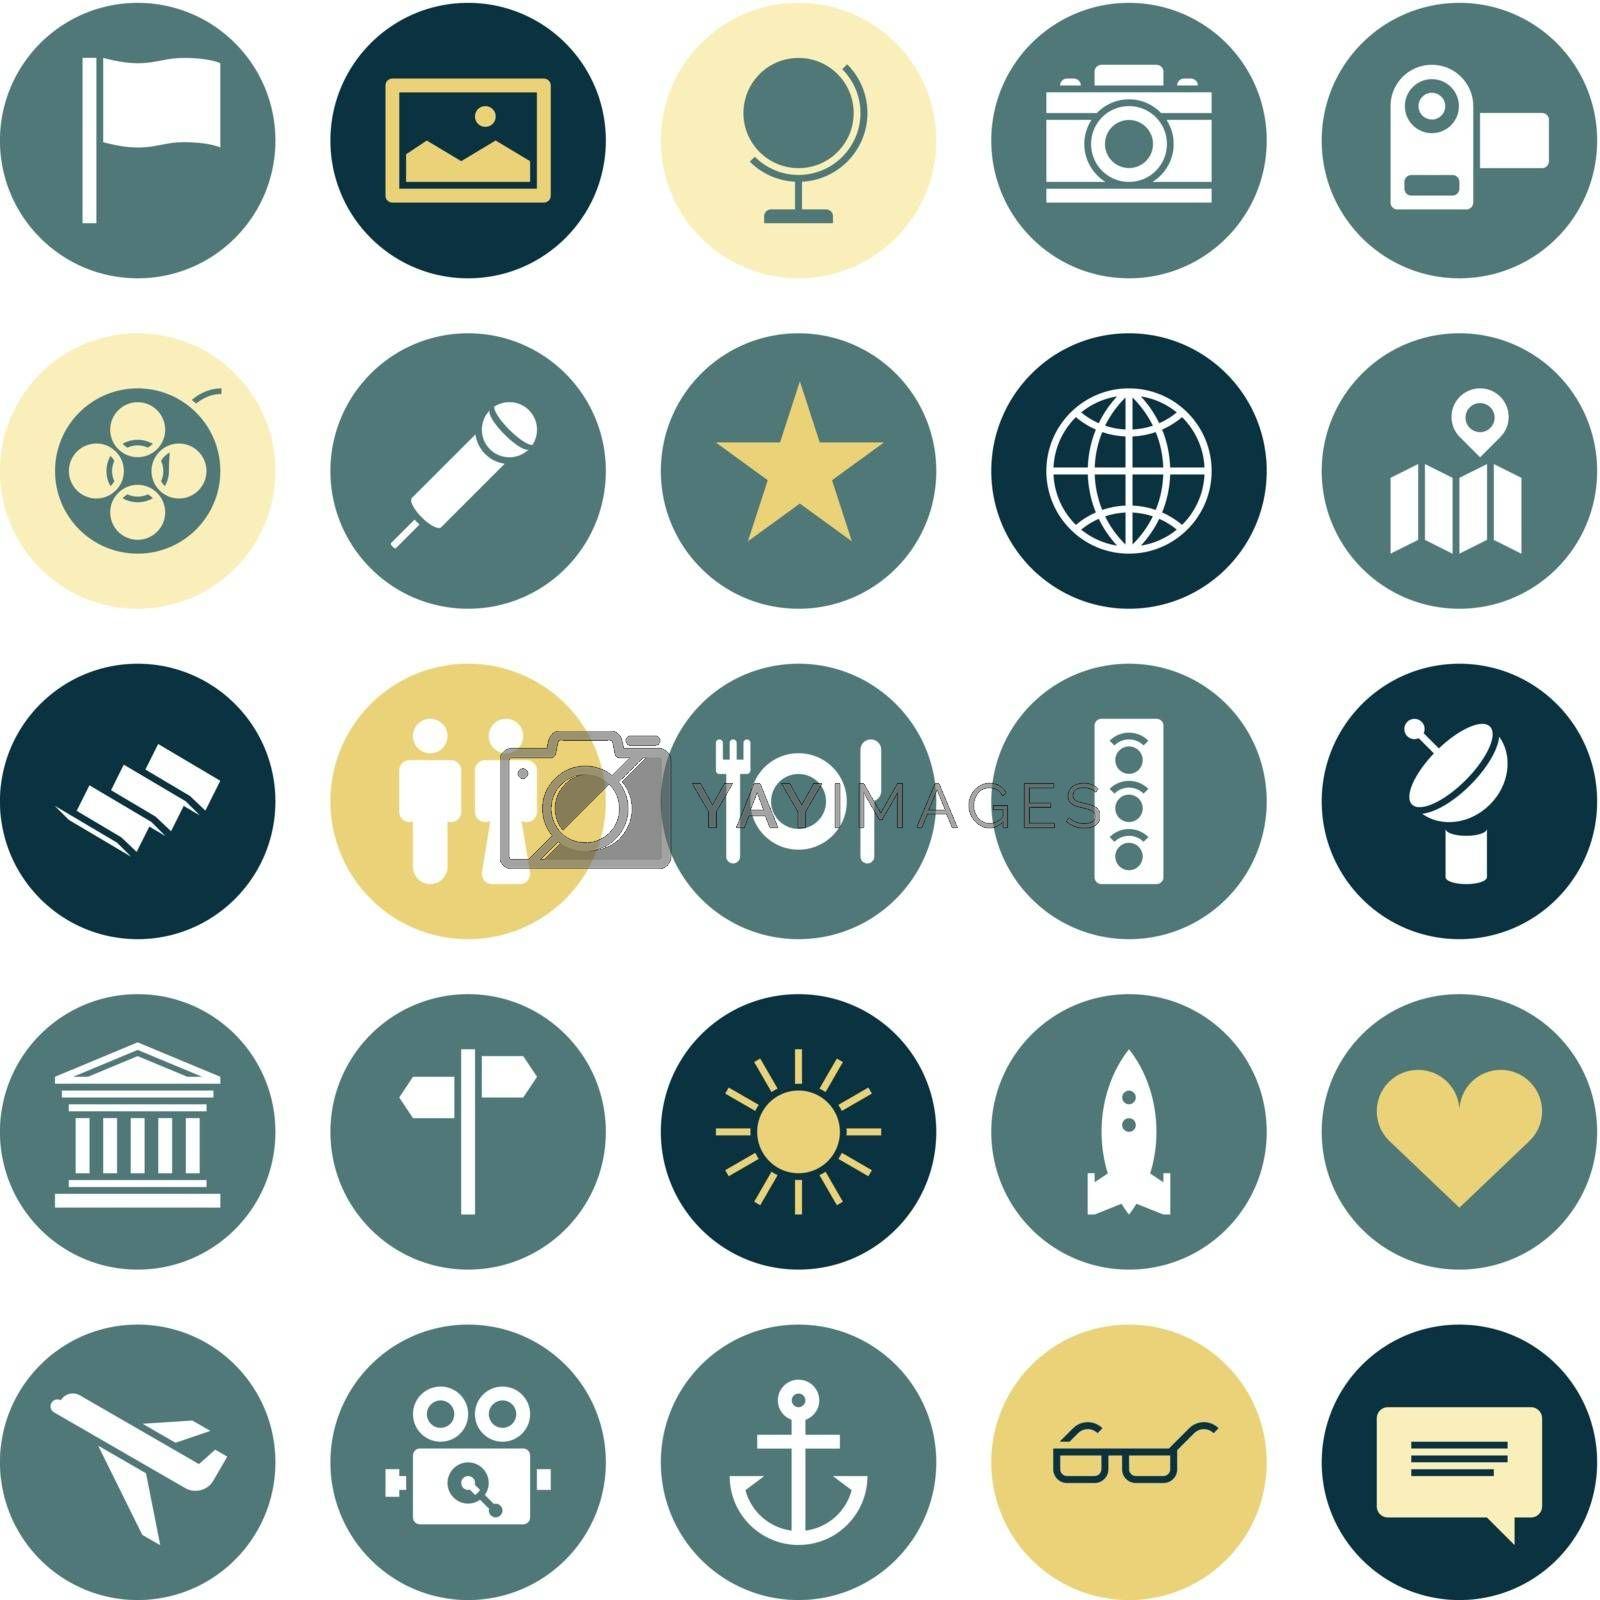 Flat design icons for travel and leisure. Vector illustration.